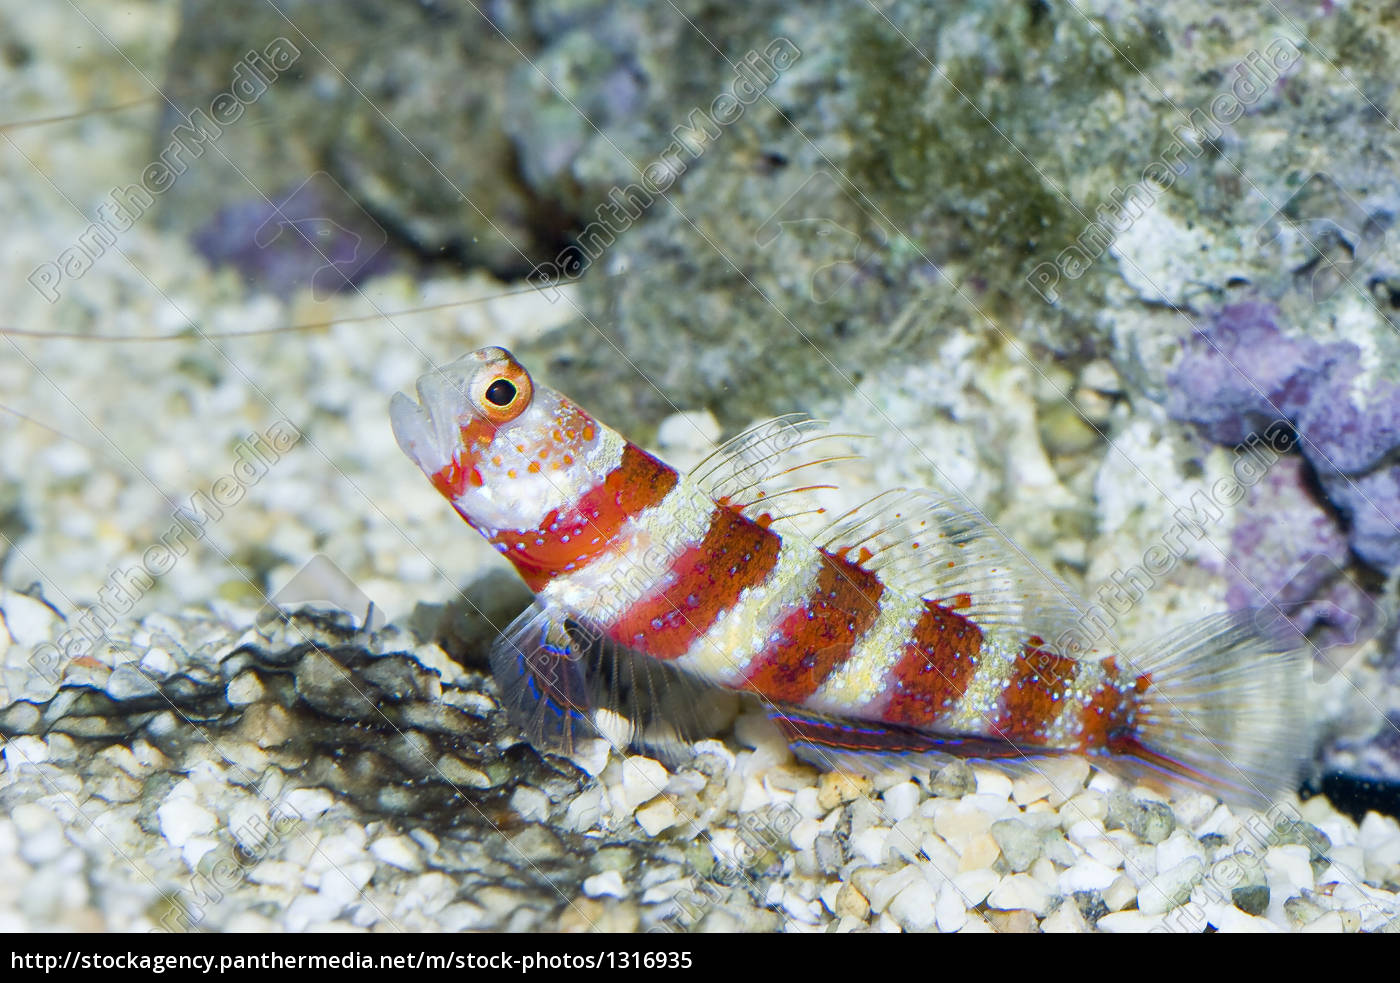 goby - 1316935